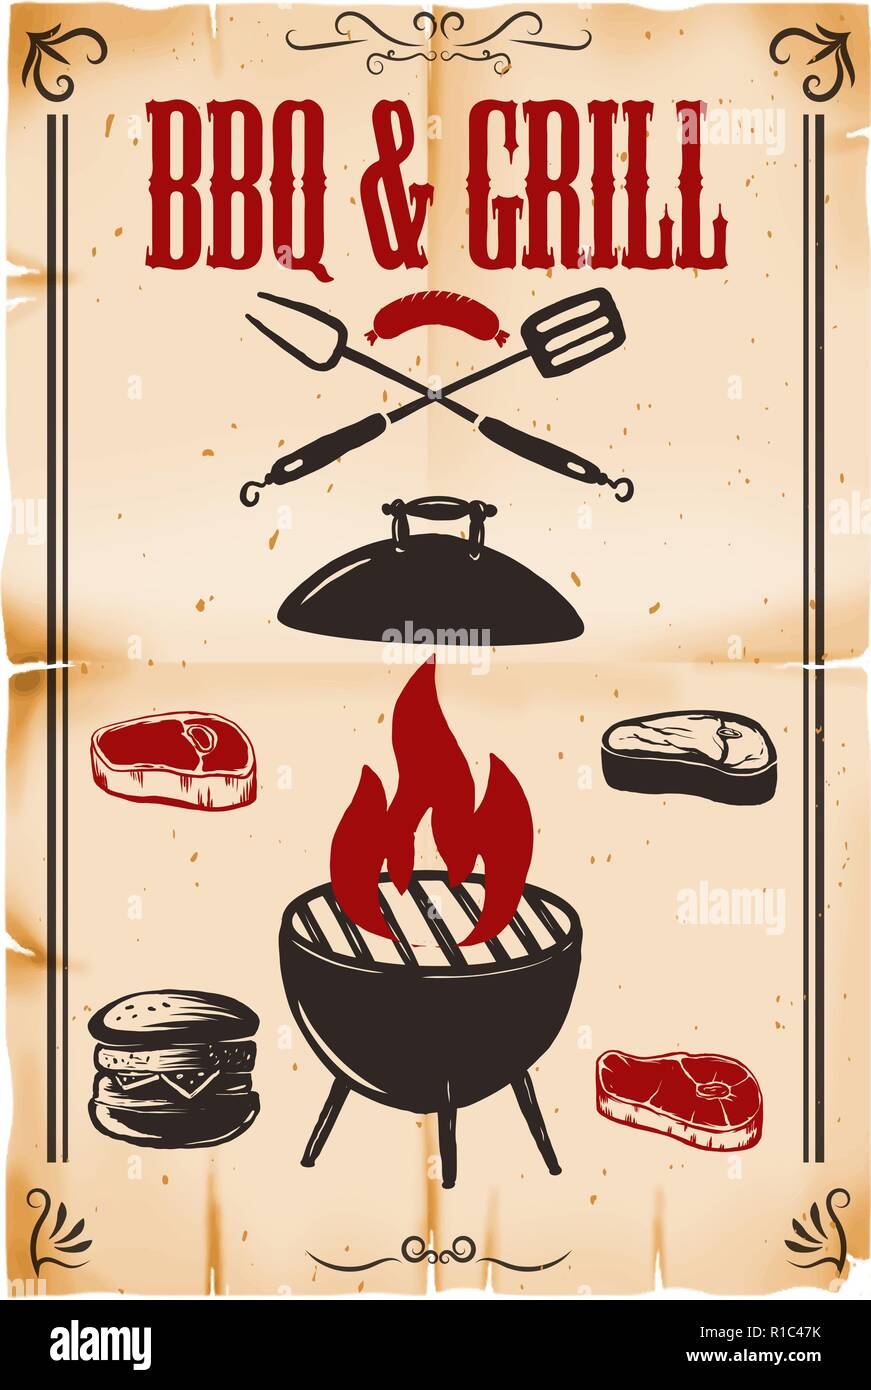 bbq grill poster template with grill illustration on grunge